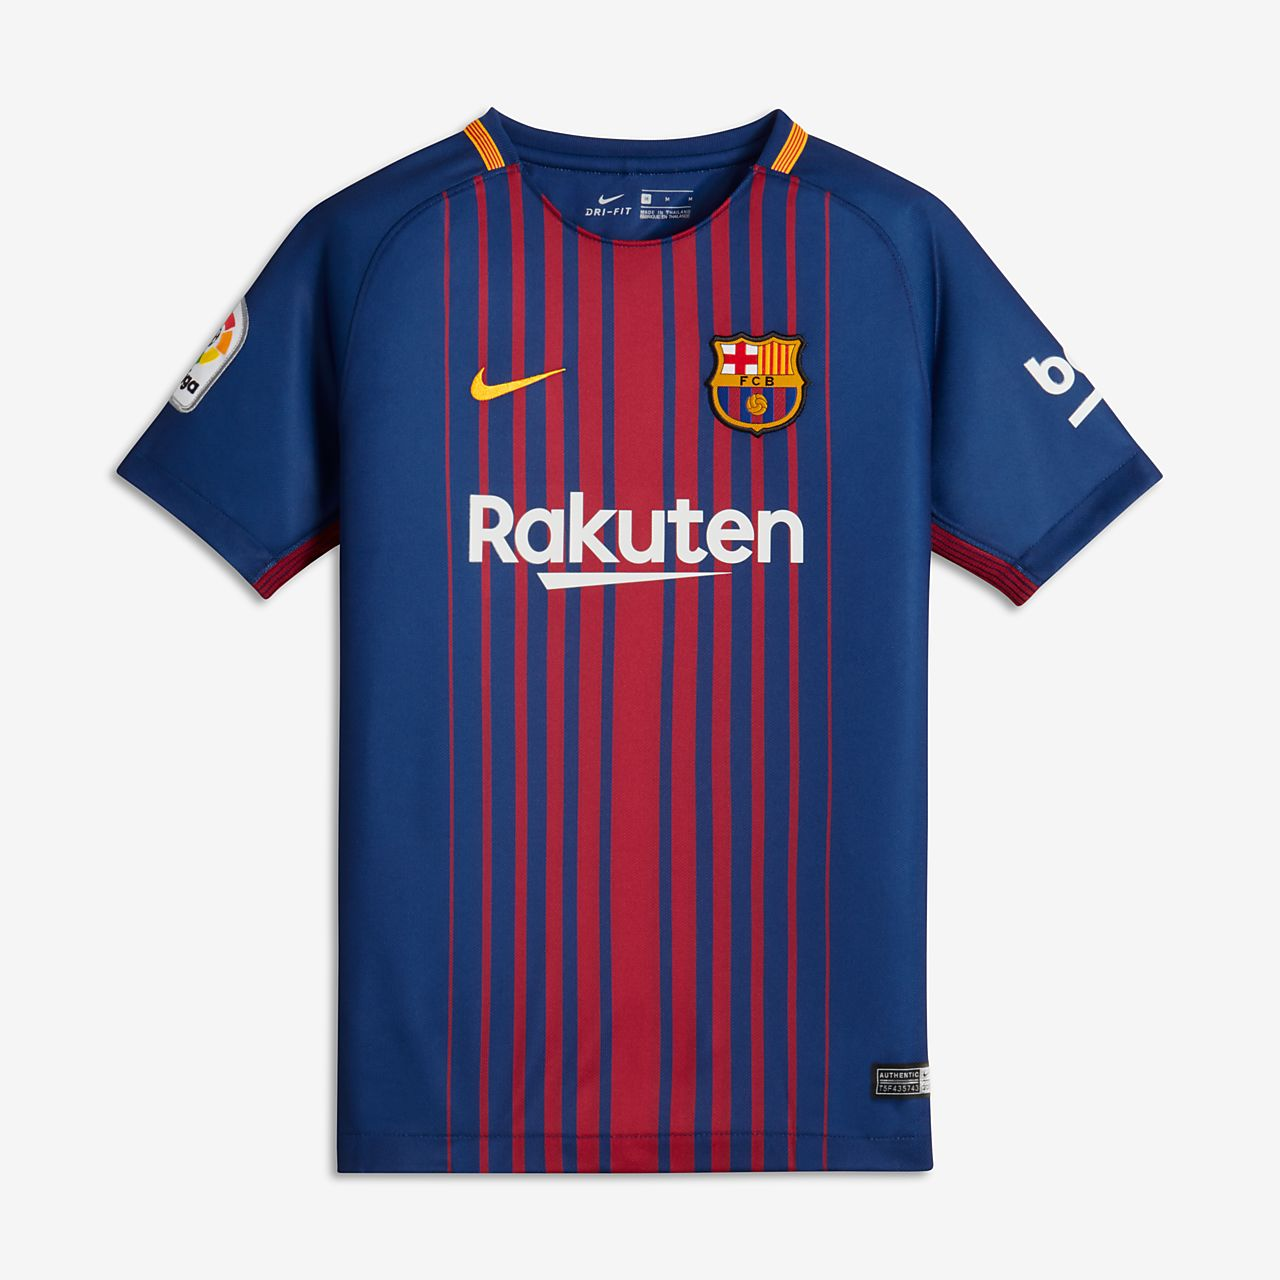 low priced 18a3c 29734 2017/18 FC Barcelona Home Older Kids' Football Shirt